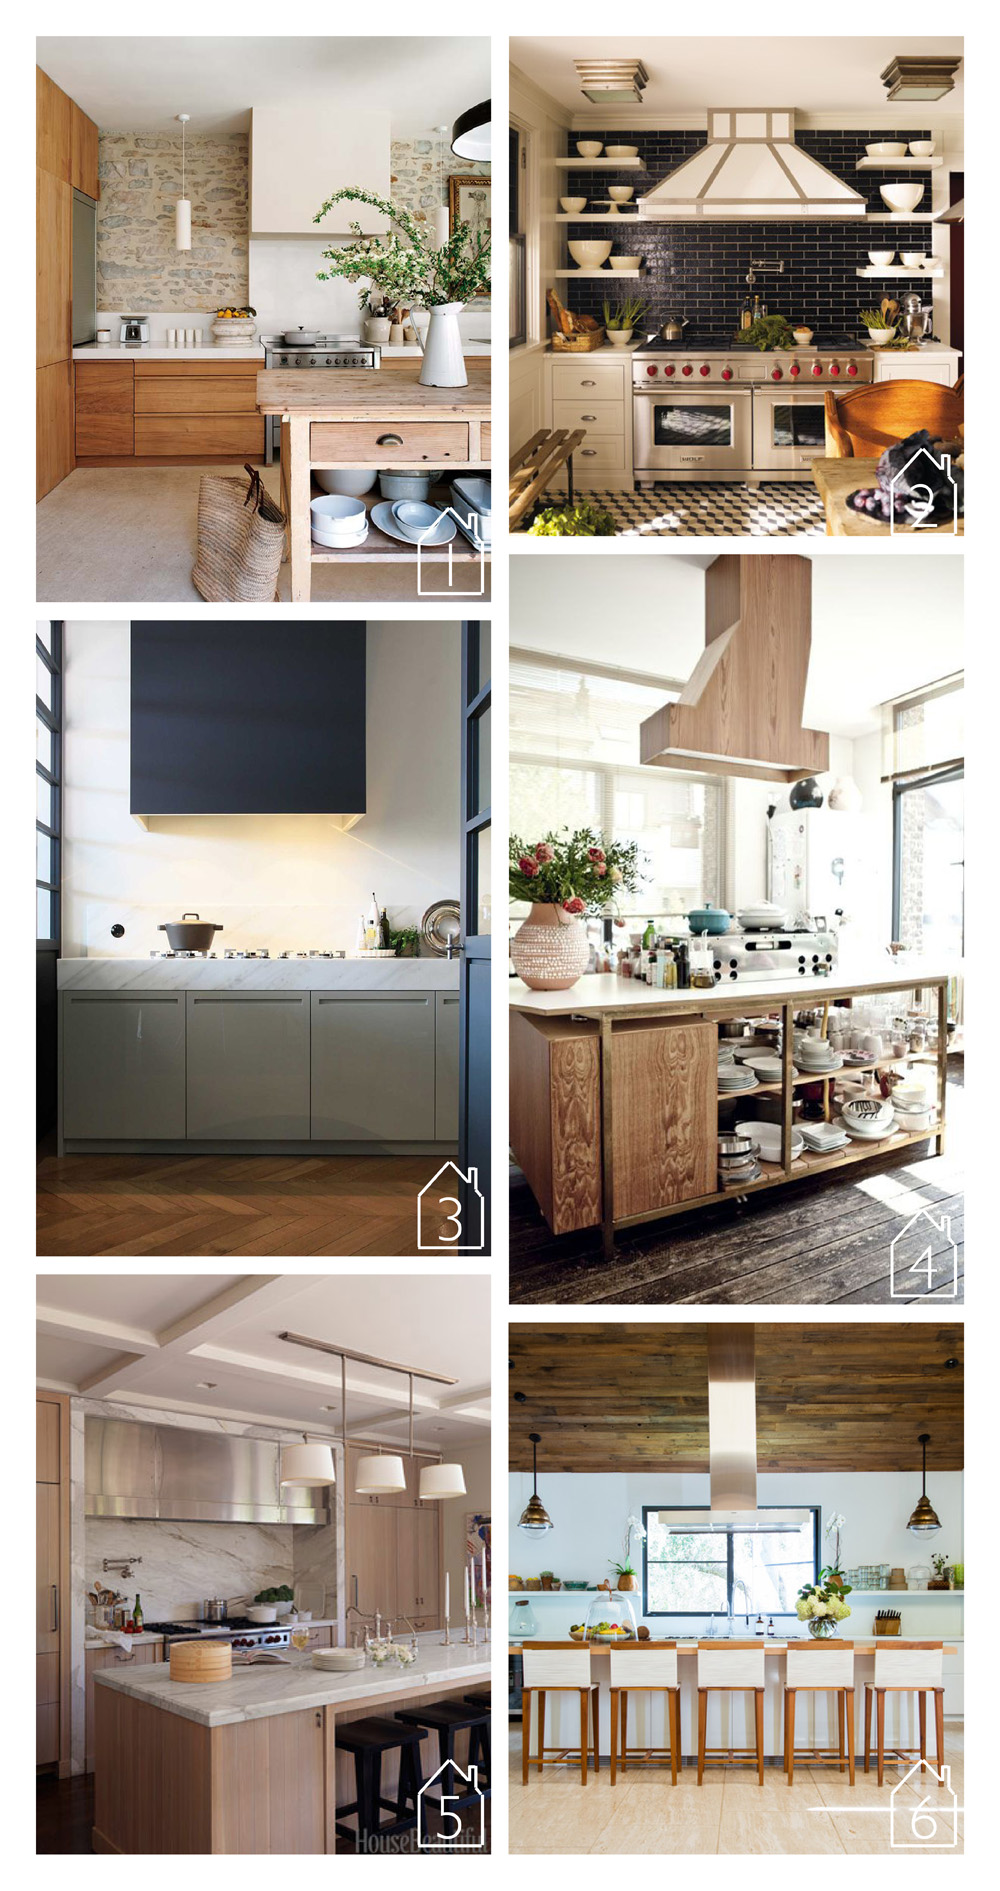 1. via Design by Delight original published in Canadian House & Home and Nuevo Estilo  2. via Canadian House & Home - photo by Eric Piasecki - design by Steven Gambrel  3. by Arian Lodder Keukens Interieur  4. design by Muriel Frances - photo by Louise Desrosiers via Milk   5. design by William Hefner - photo by Thomas Loof  via House Beautiful  6. home of Jenni Kayne via Lonny